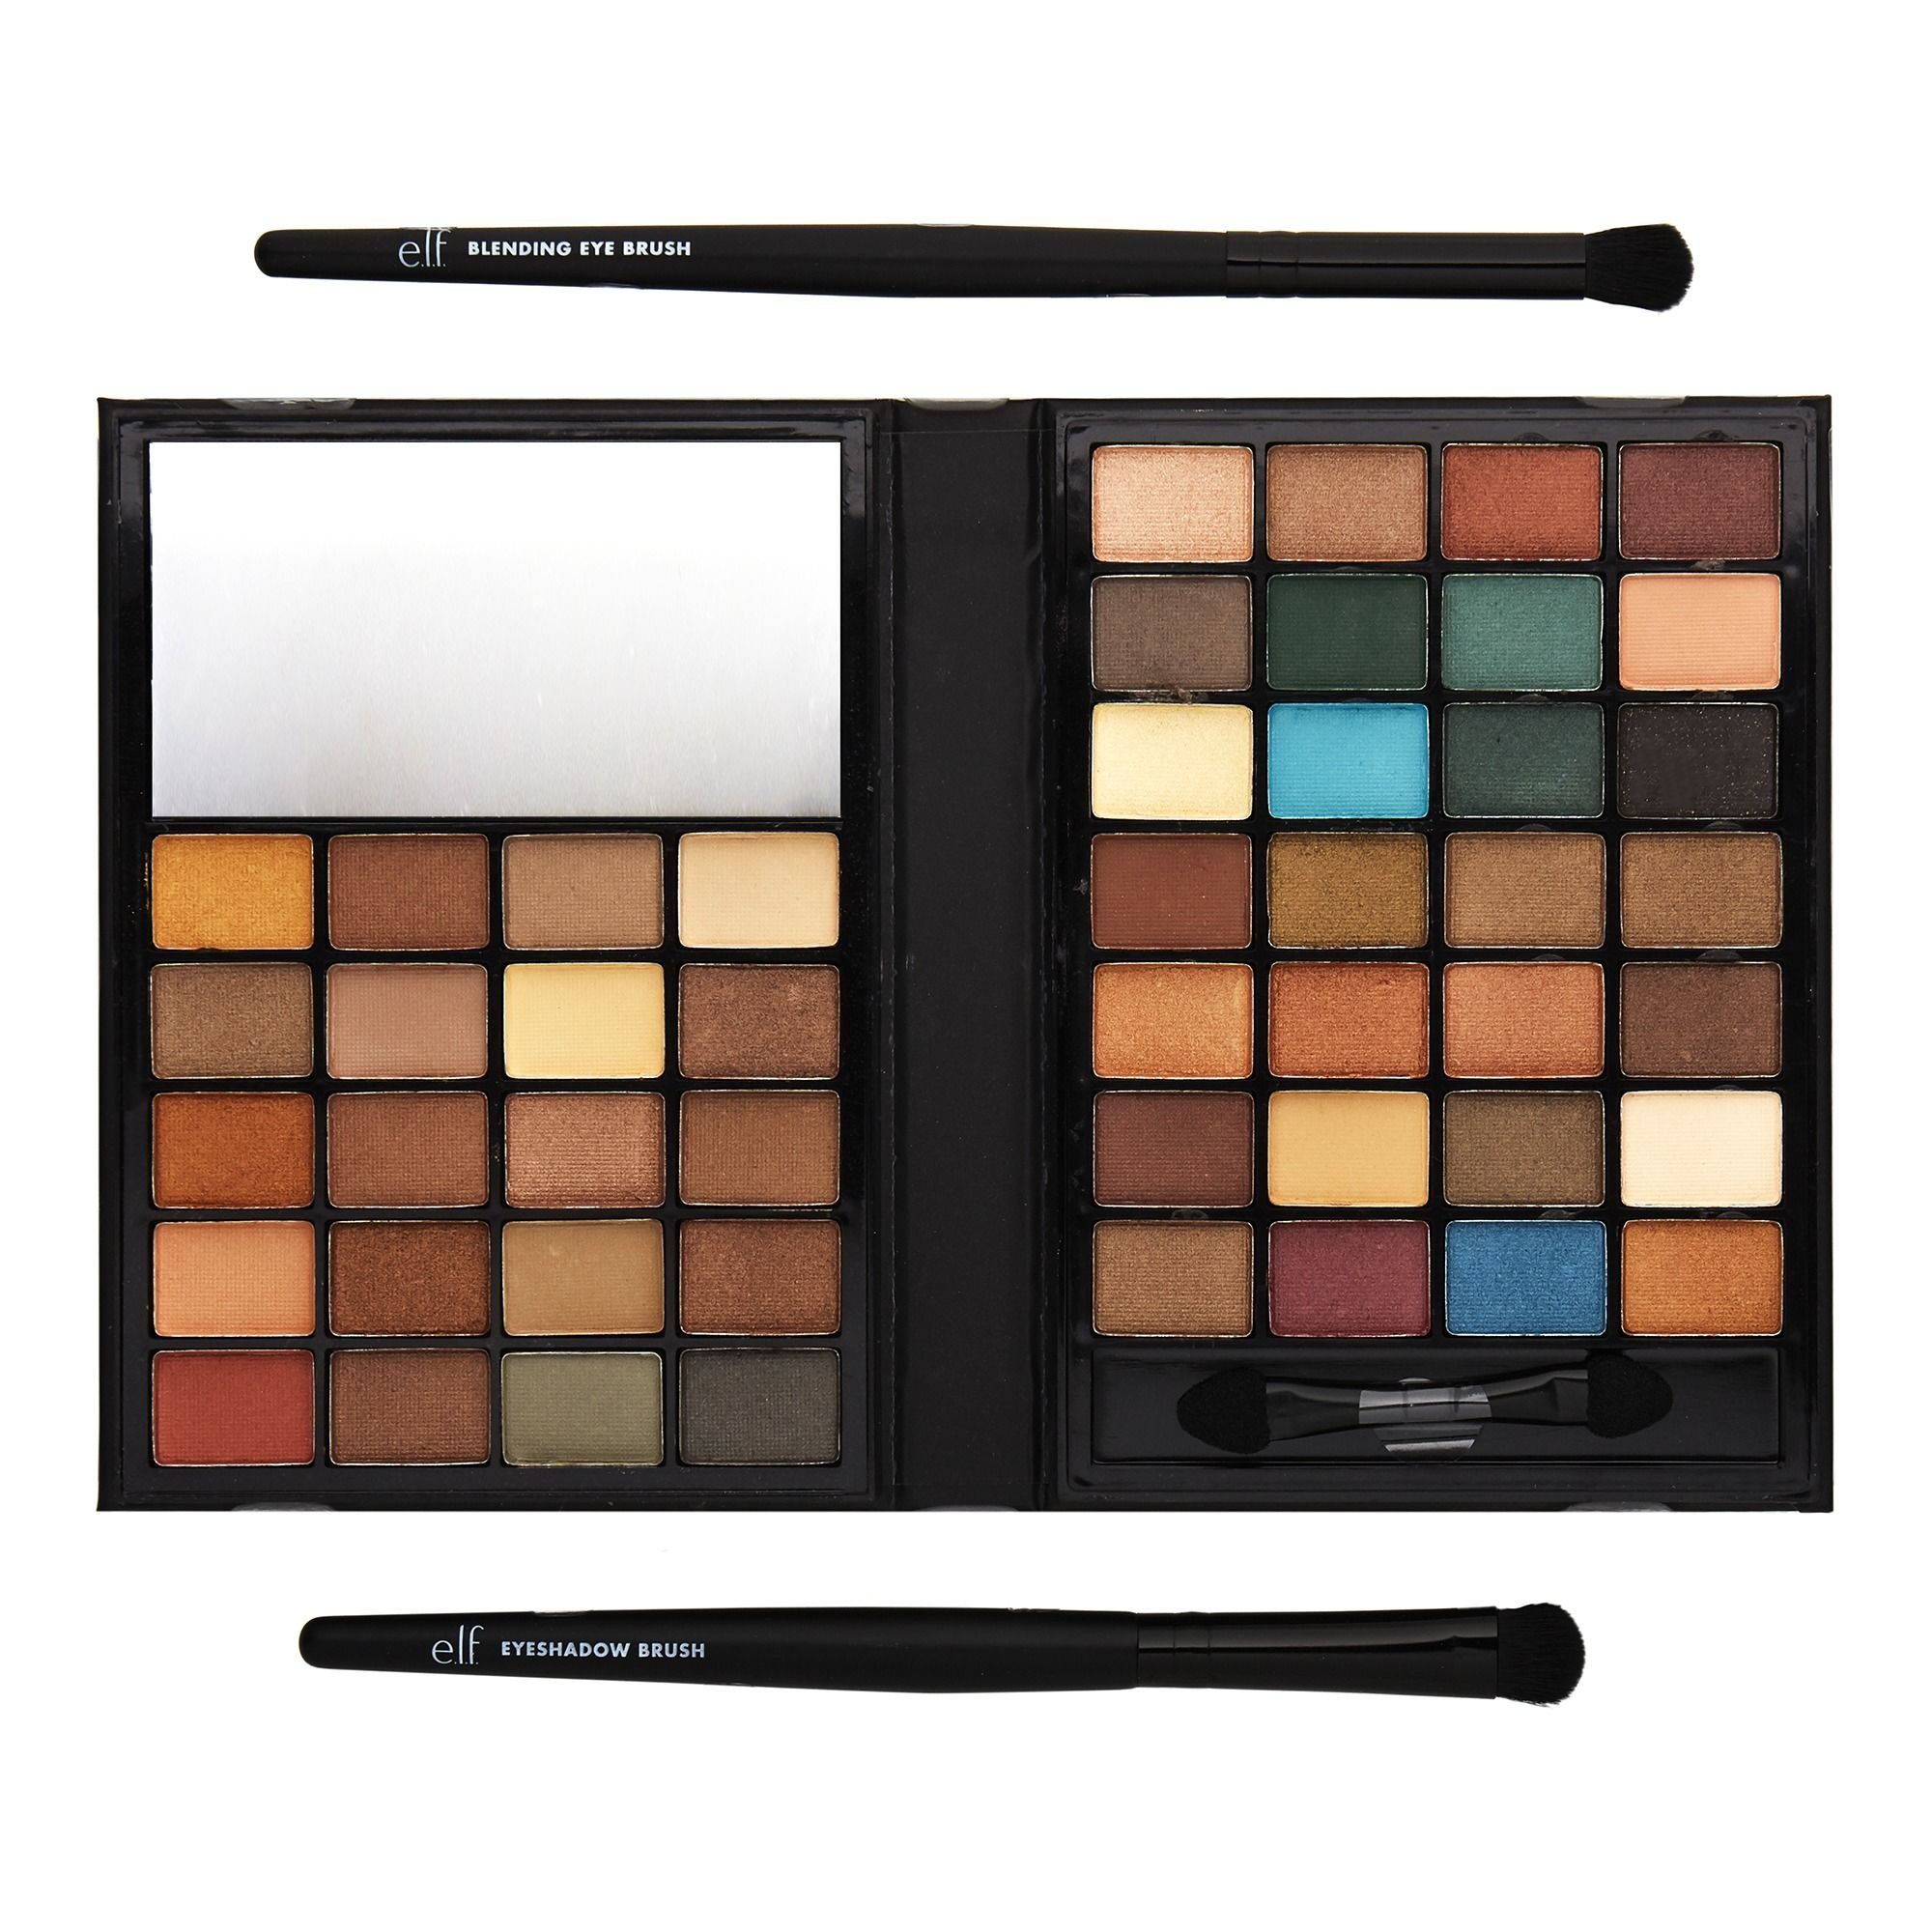 48 Color Eyeshadow And Brush Set E L F Cosmetics Cruelty Free